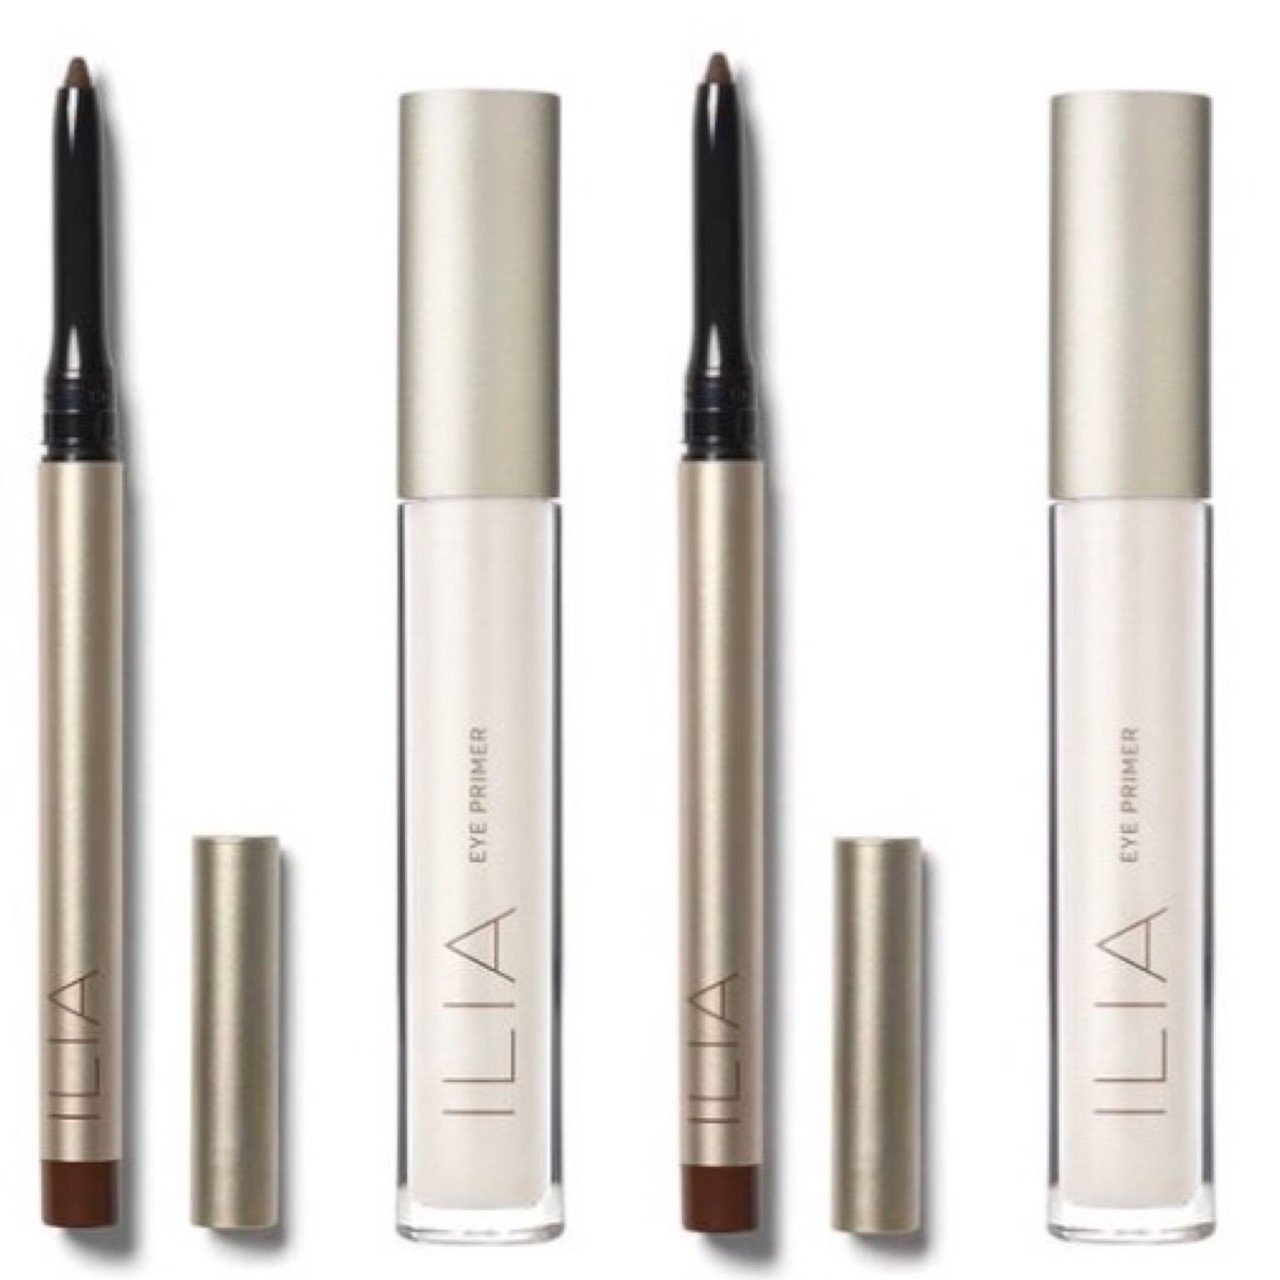 Ilia Clean Line Gel liner and Eye Primer (and some thoughts on silicone)